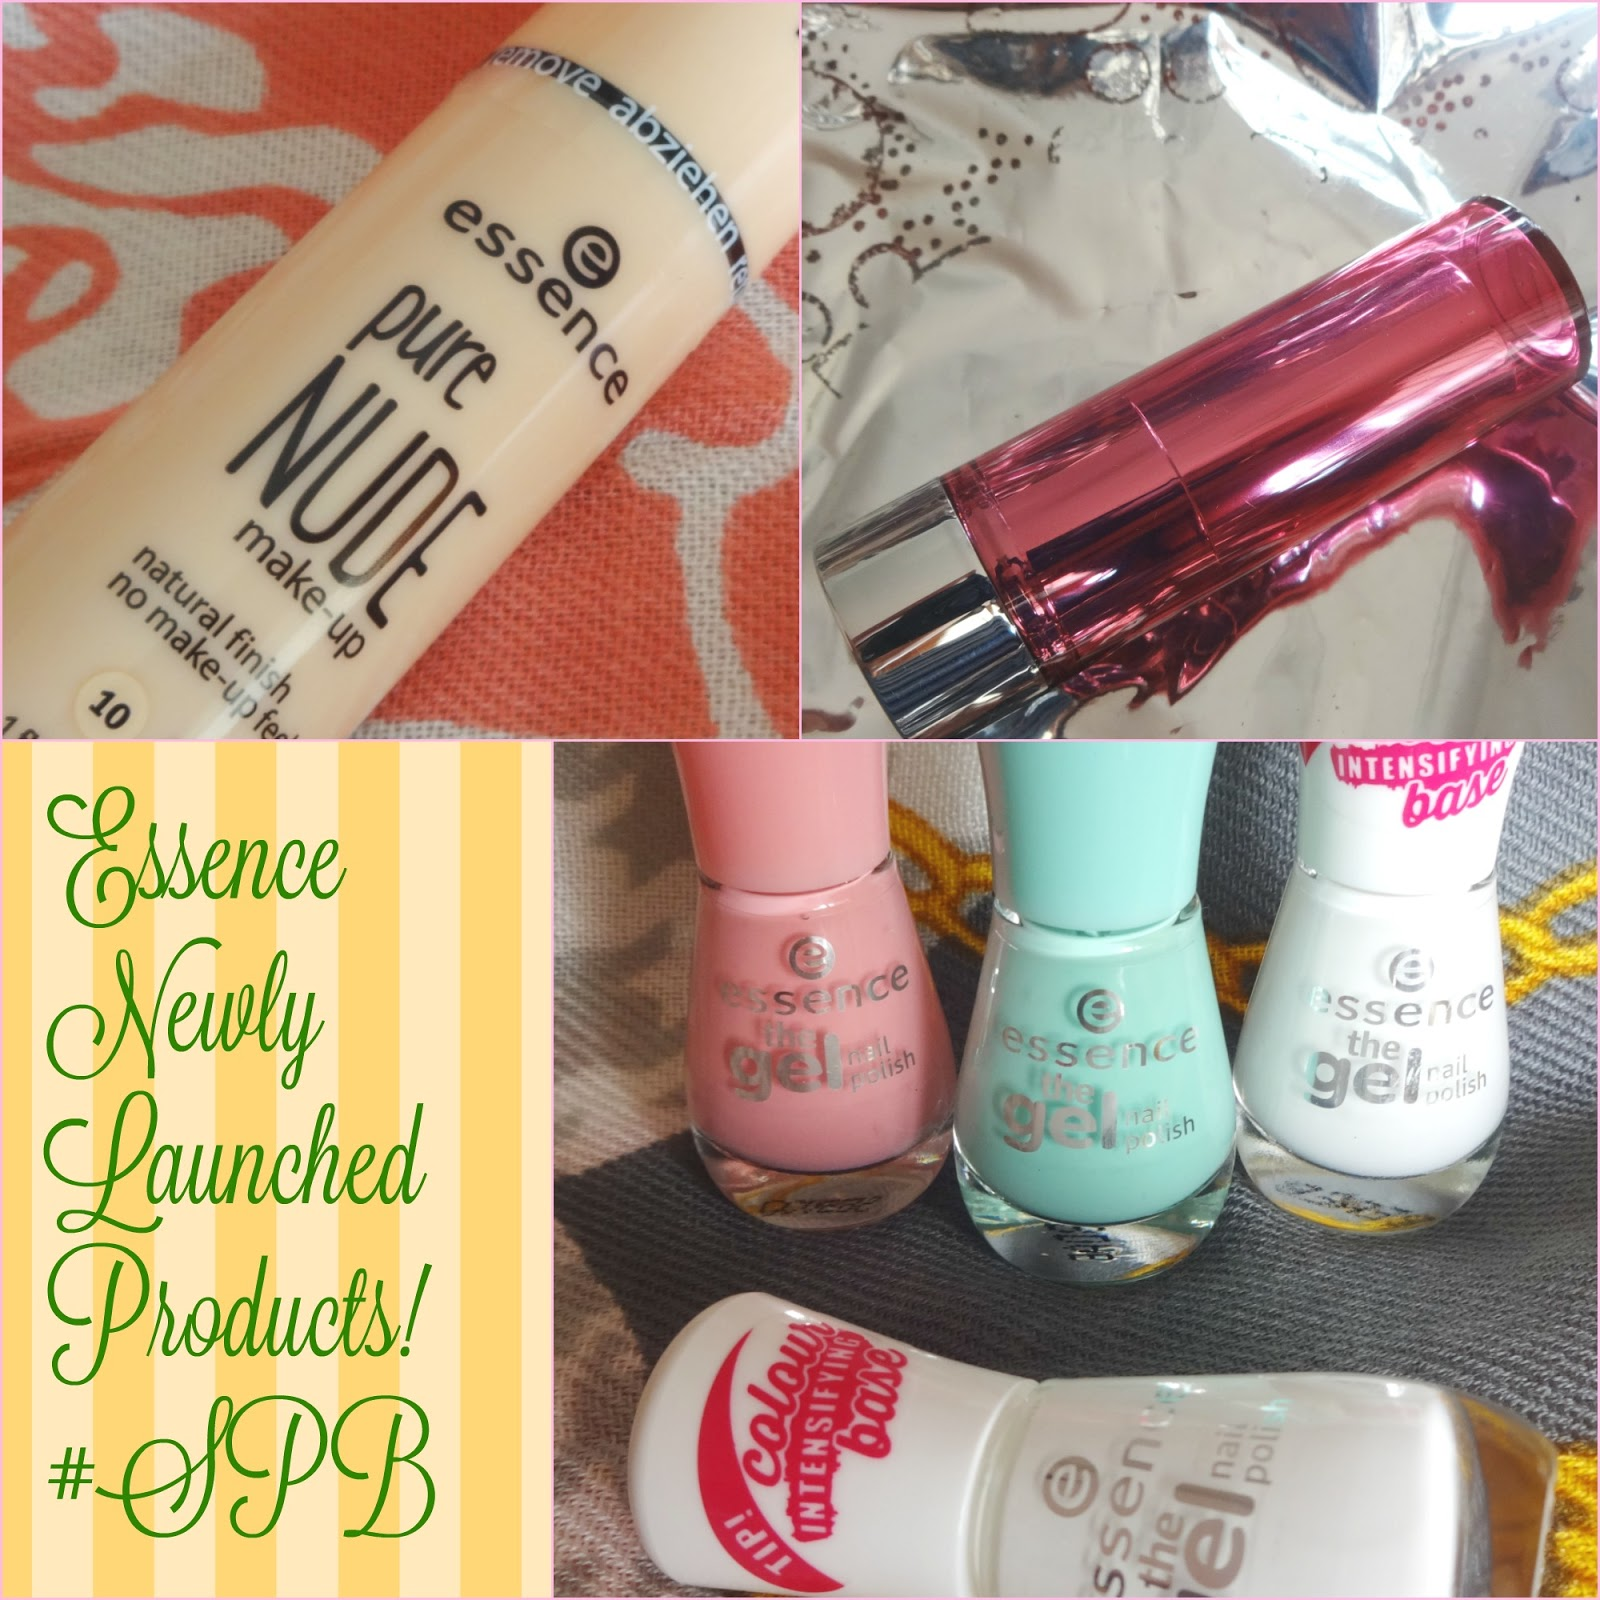 Essence New Launched Products! | Sparkling Palette Blog